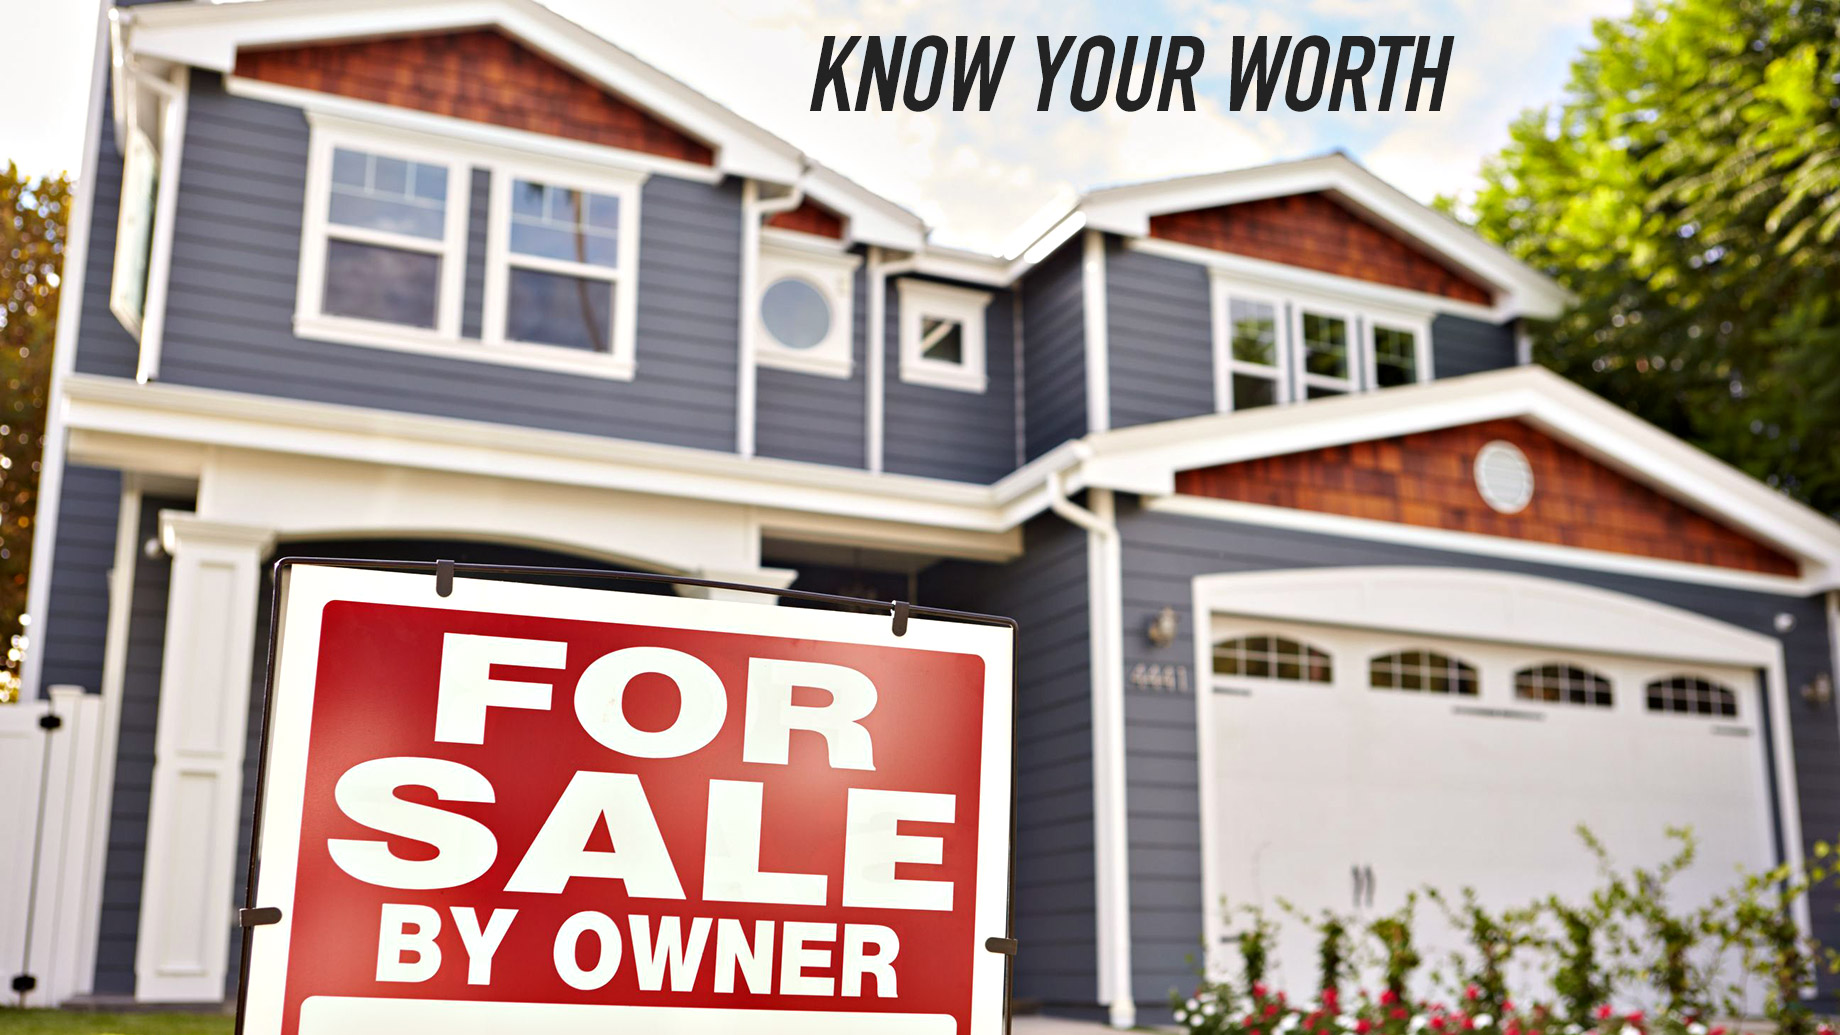 Know Your Worth - How to Find an Accurate Home Value for Your House